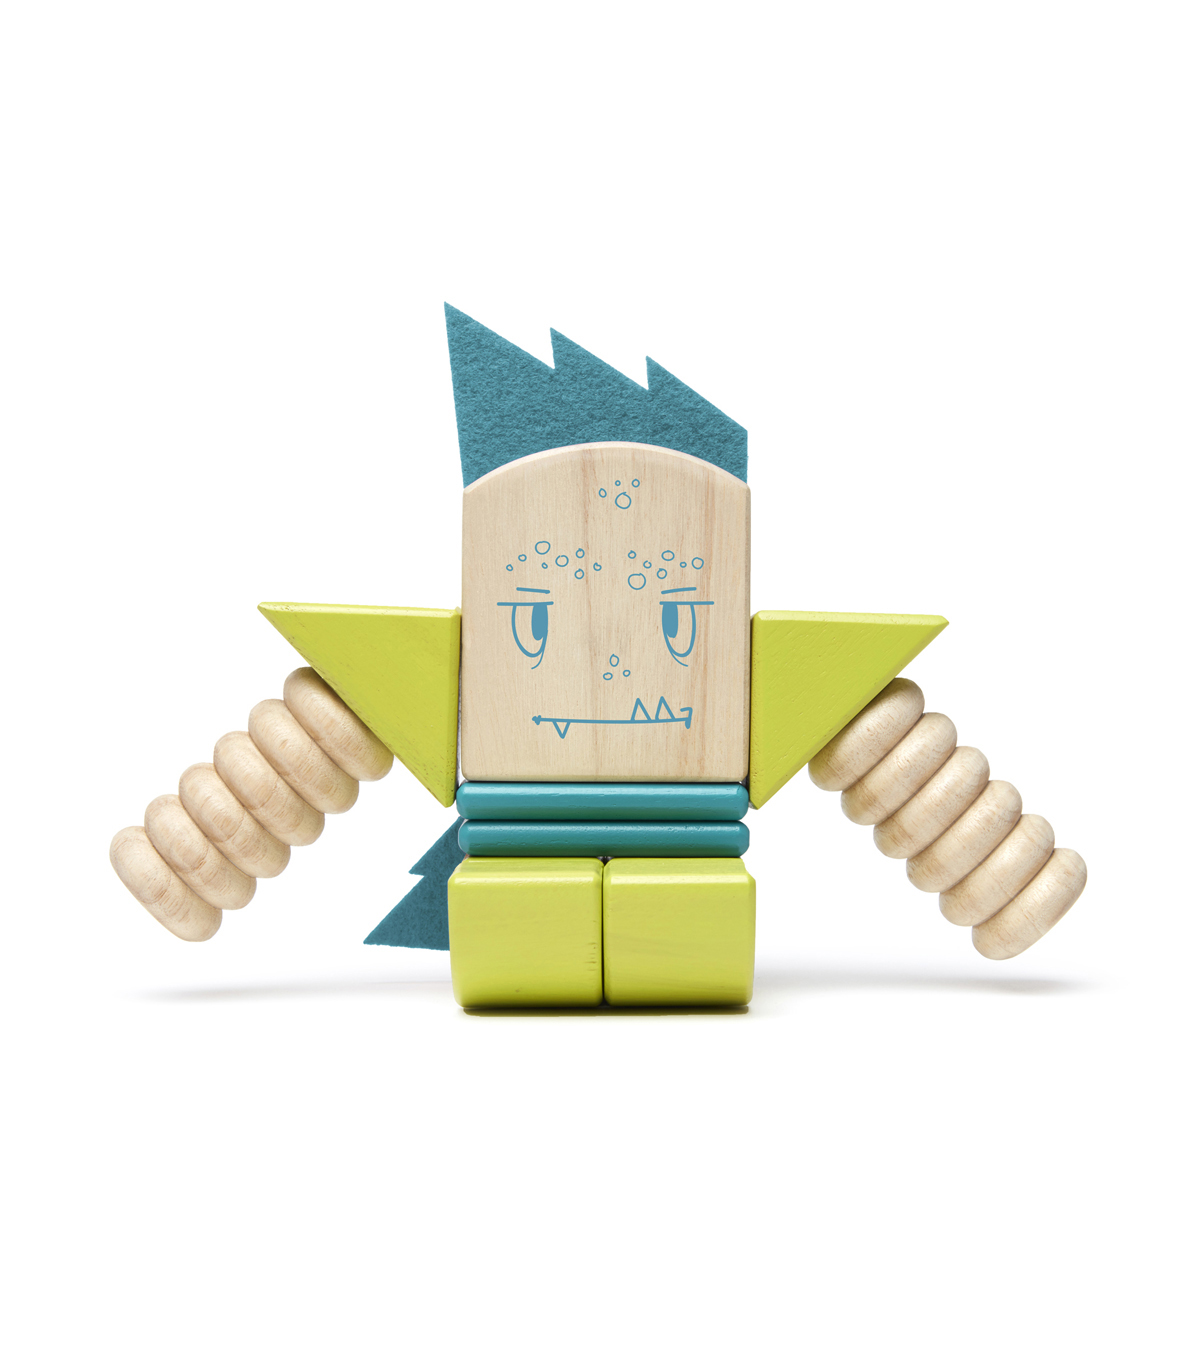 Zip Zap Wooden Block Set